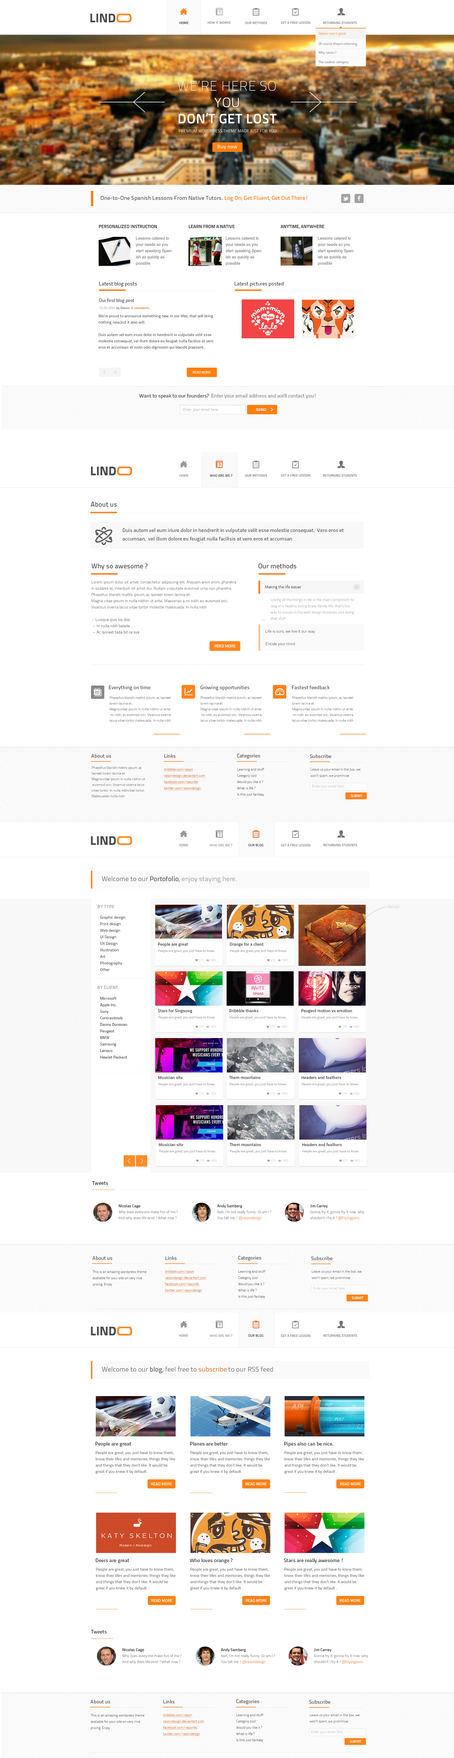 Lindoo Web design by RasonDesign